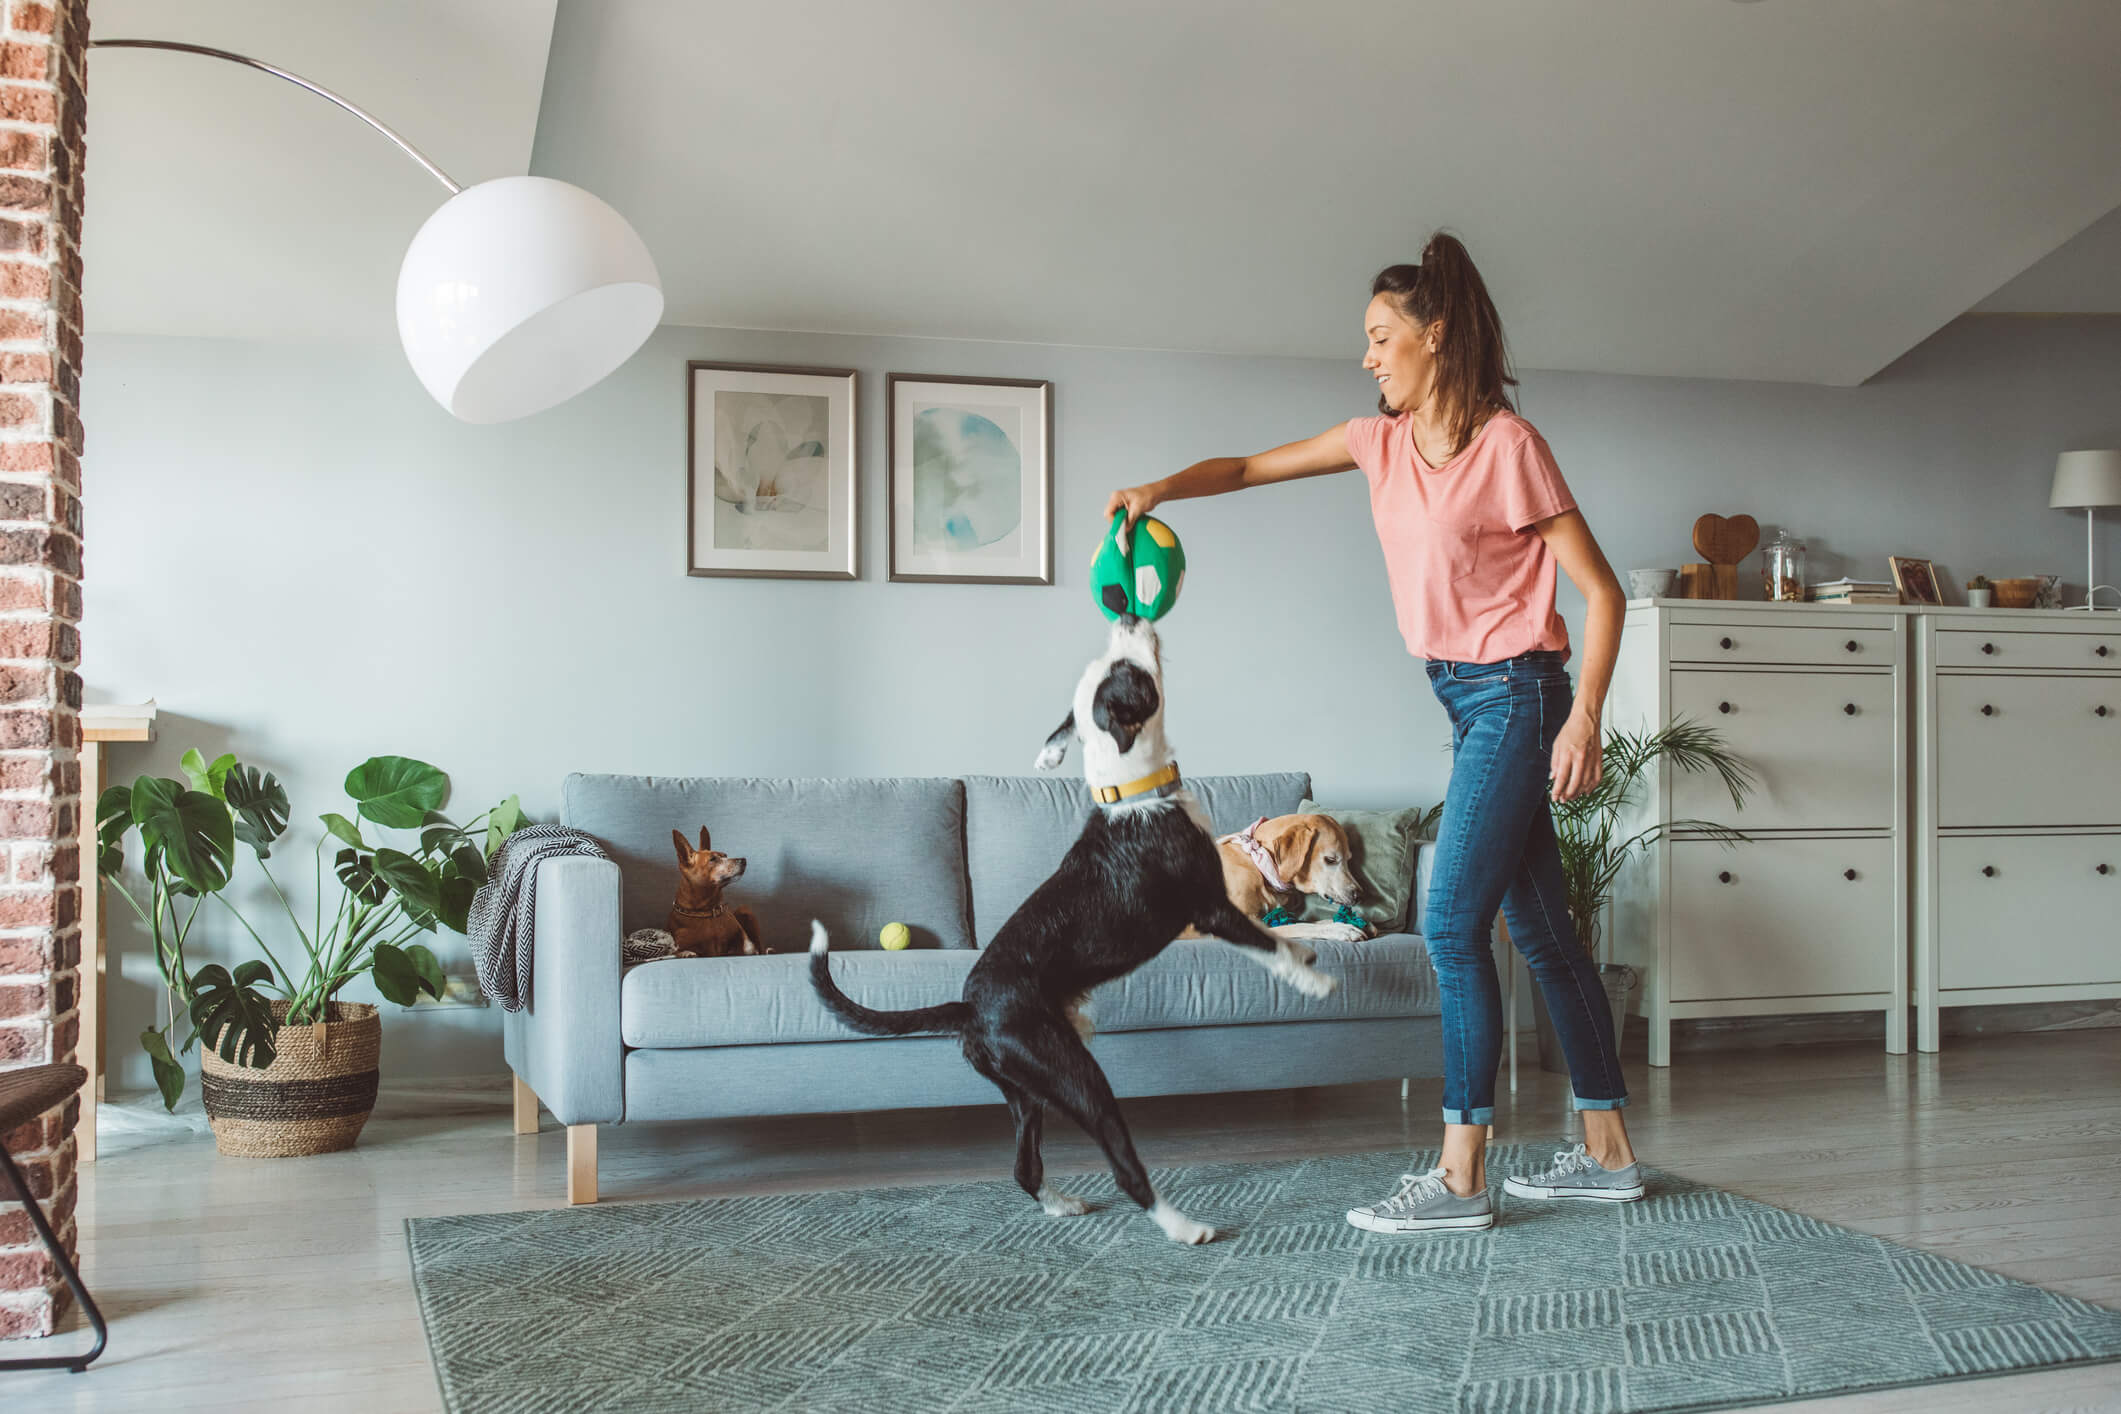 Woman playing with a dog in the living room of a house